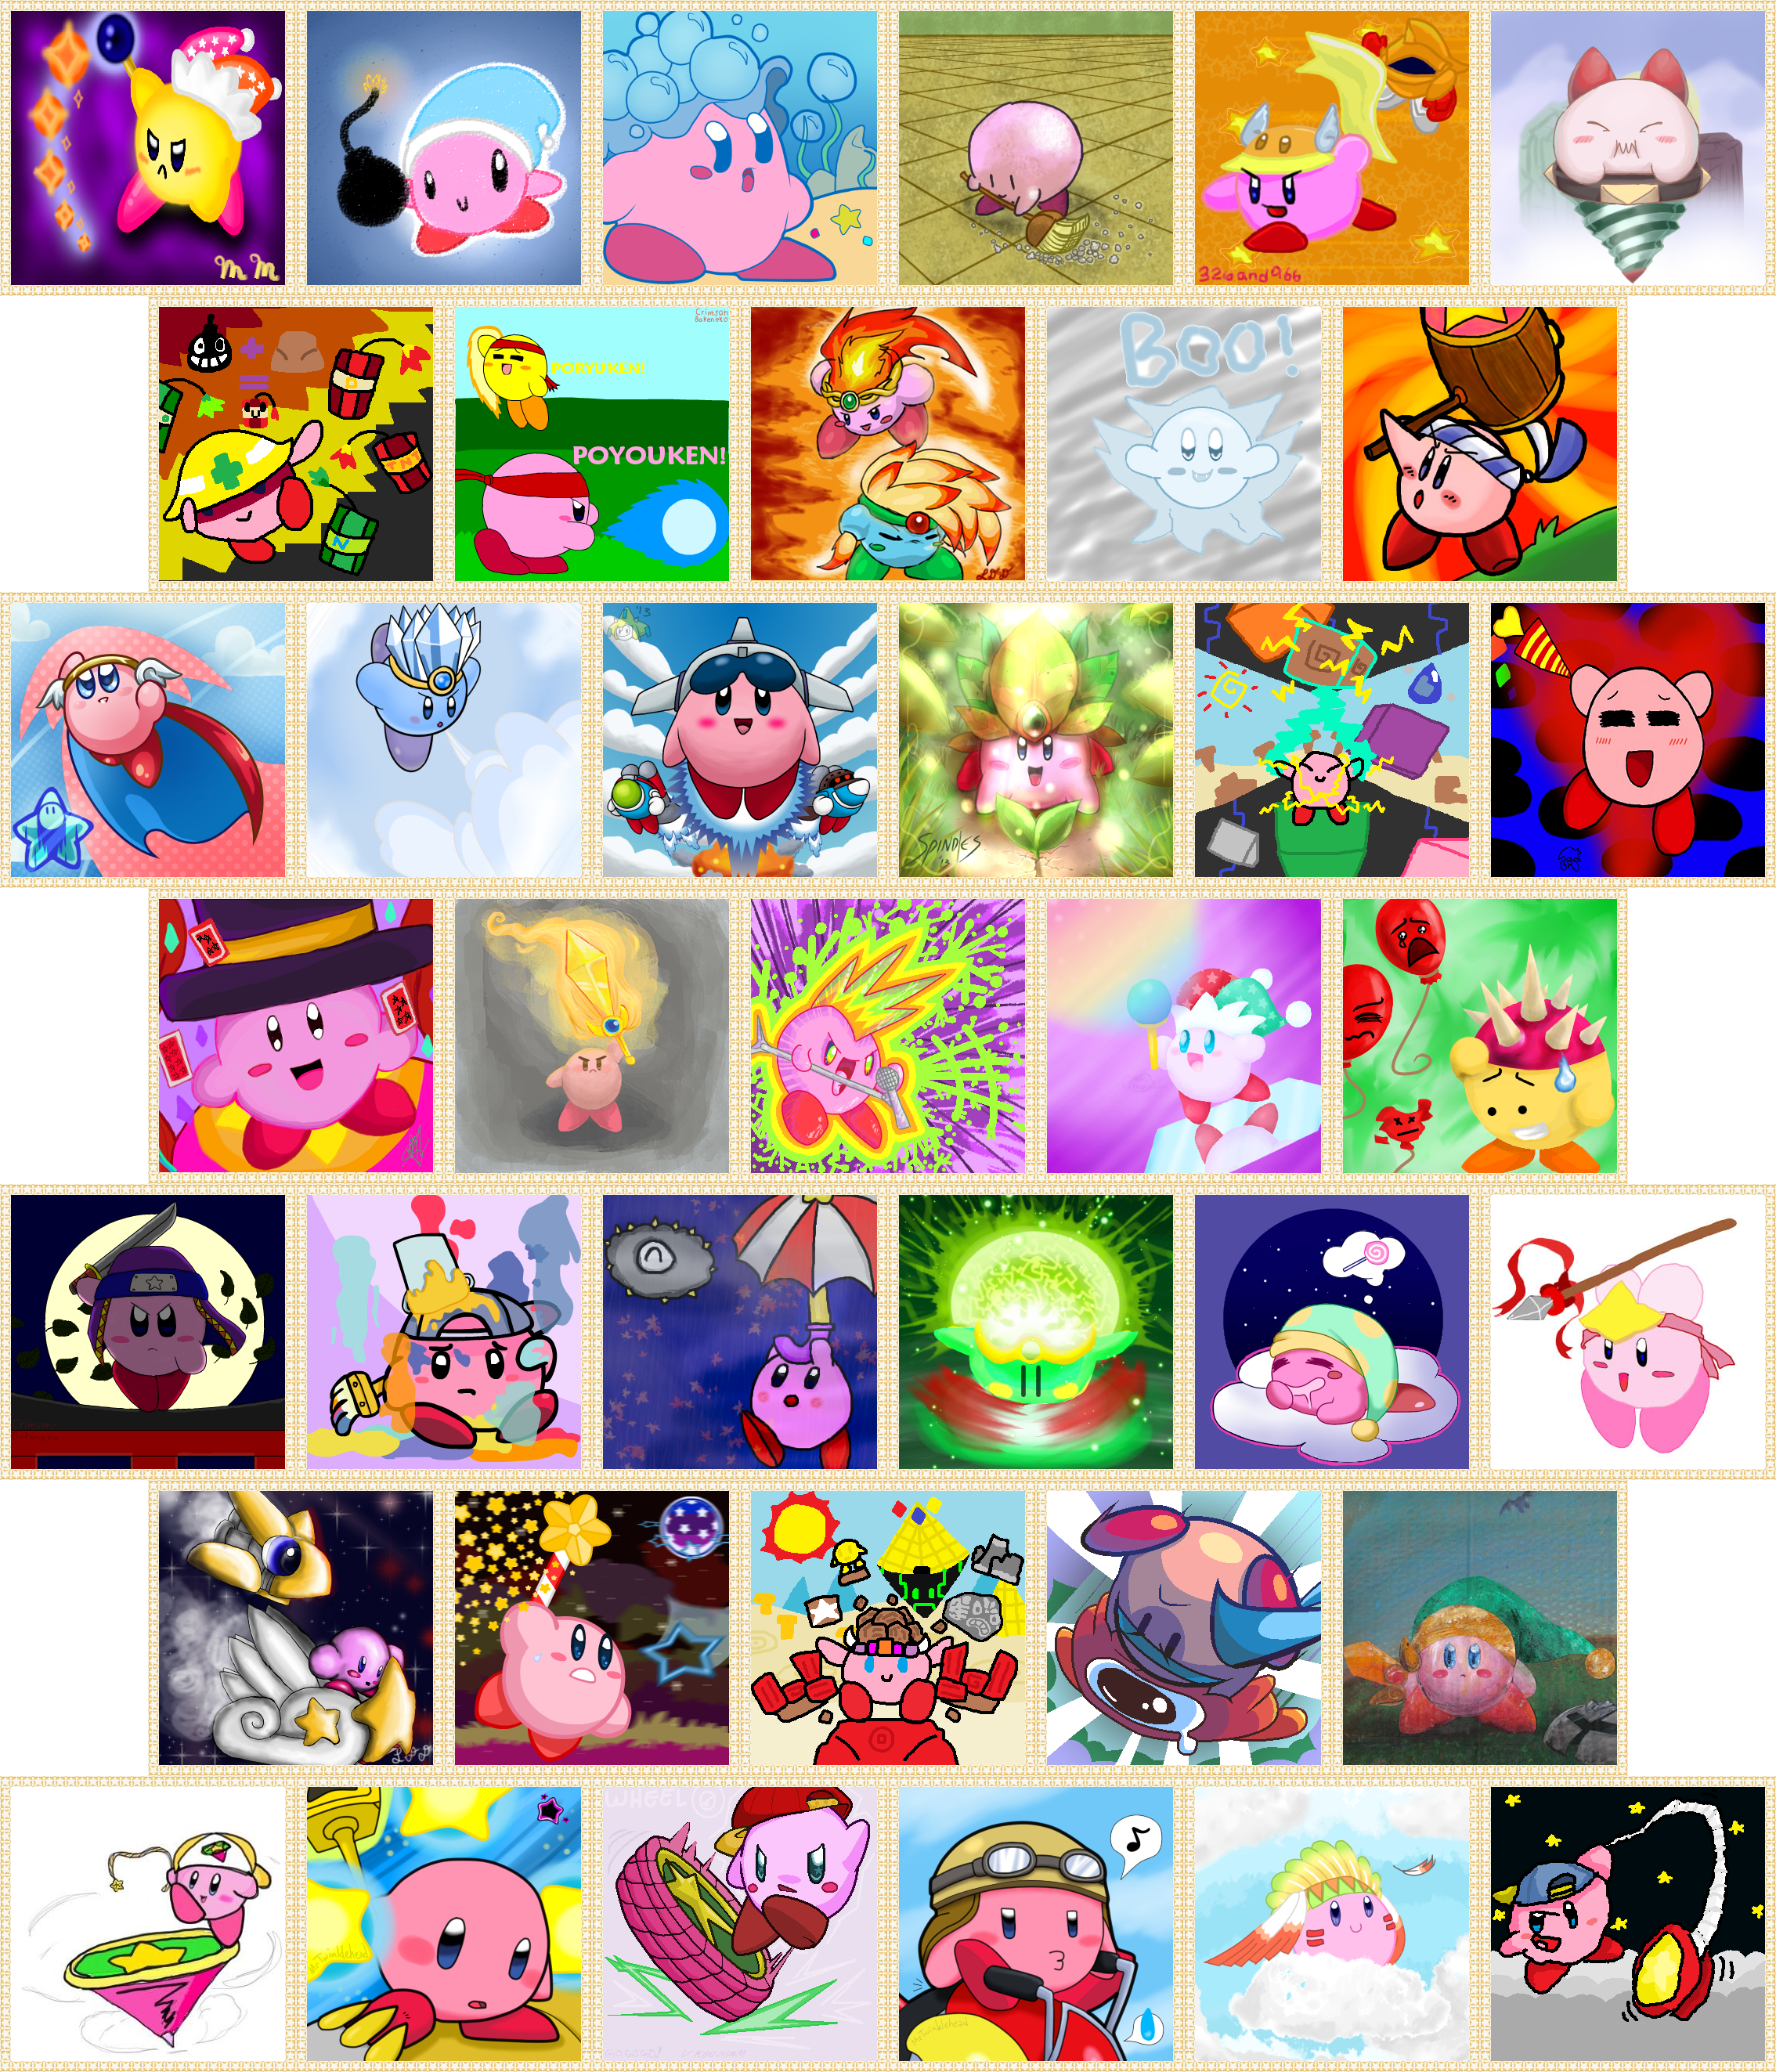 All Kirby Abilities